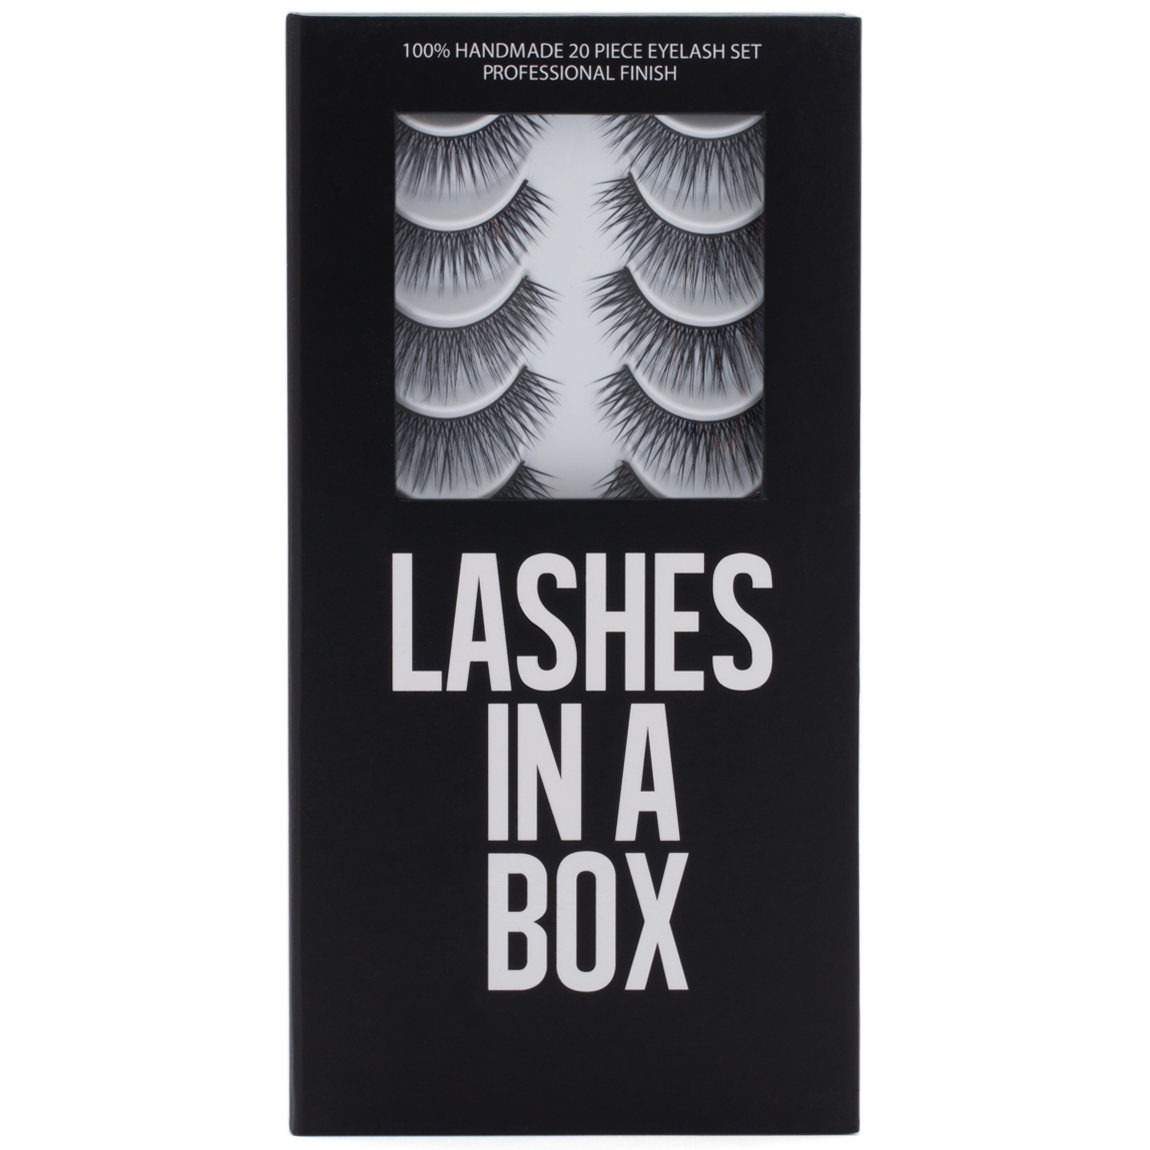 LASHES IN A BOX N°16 product swatch.